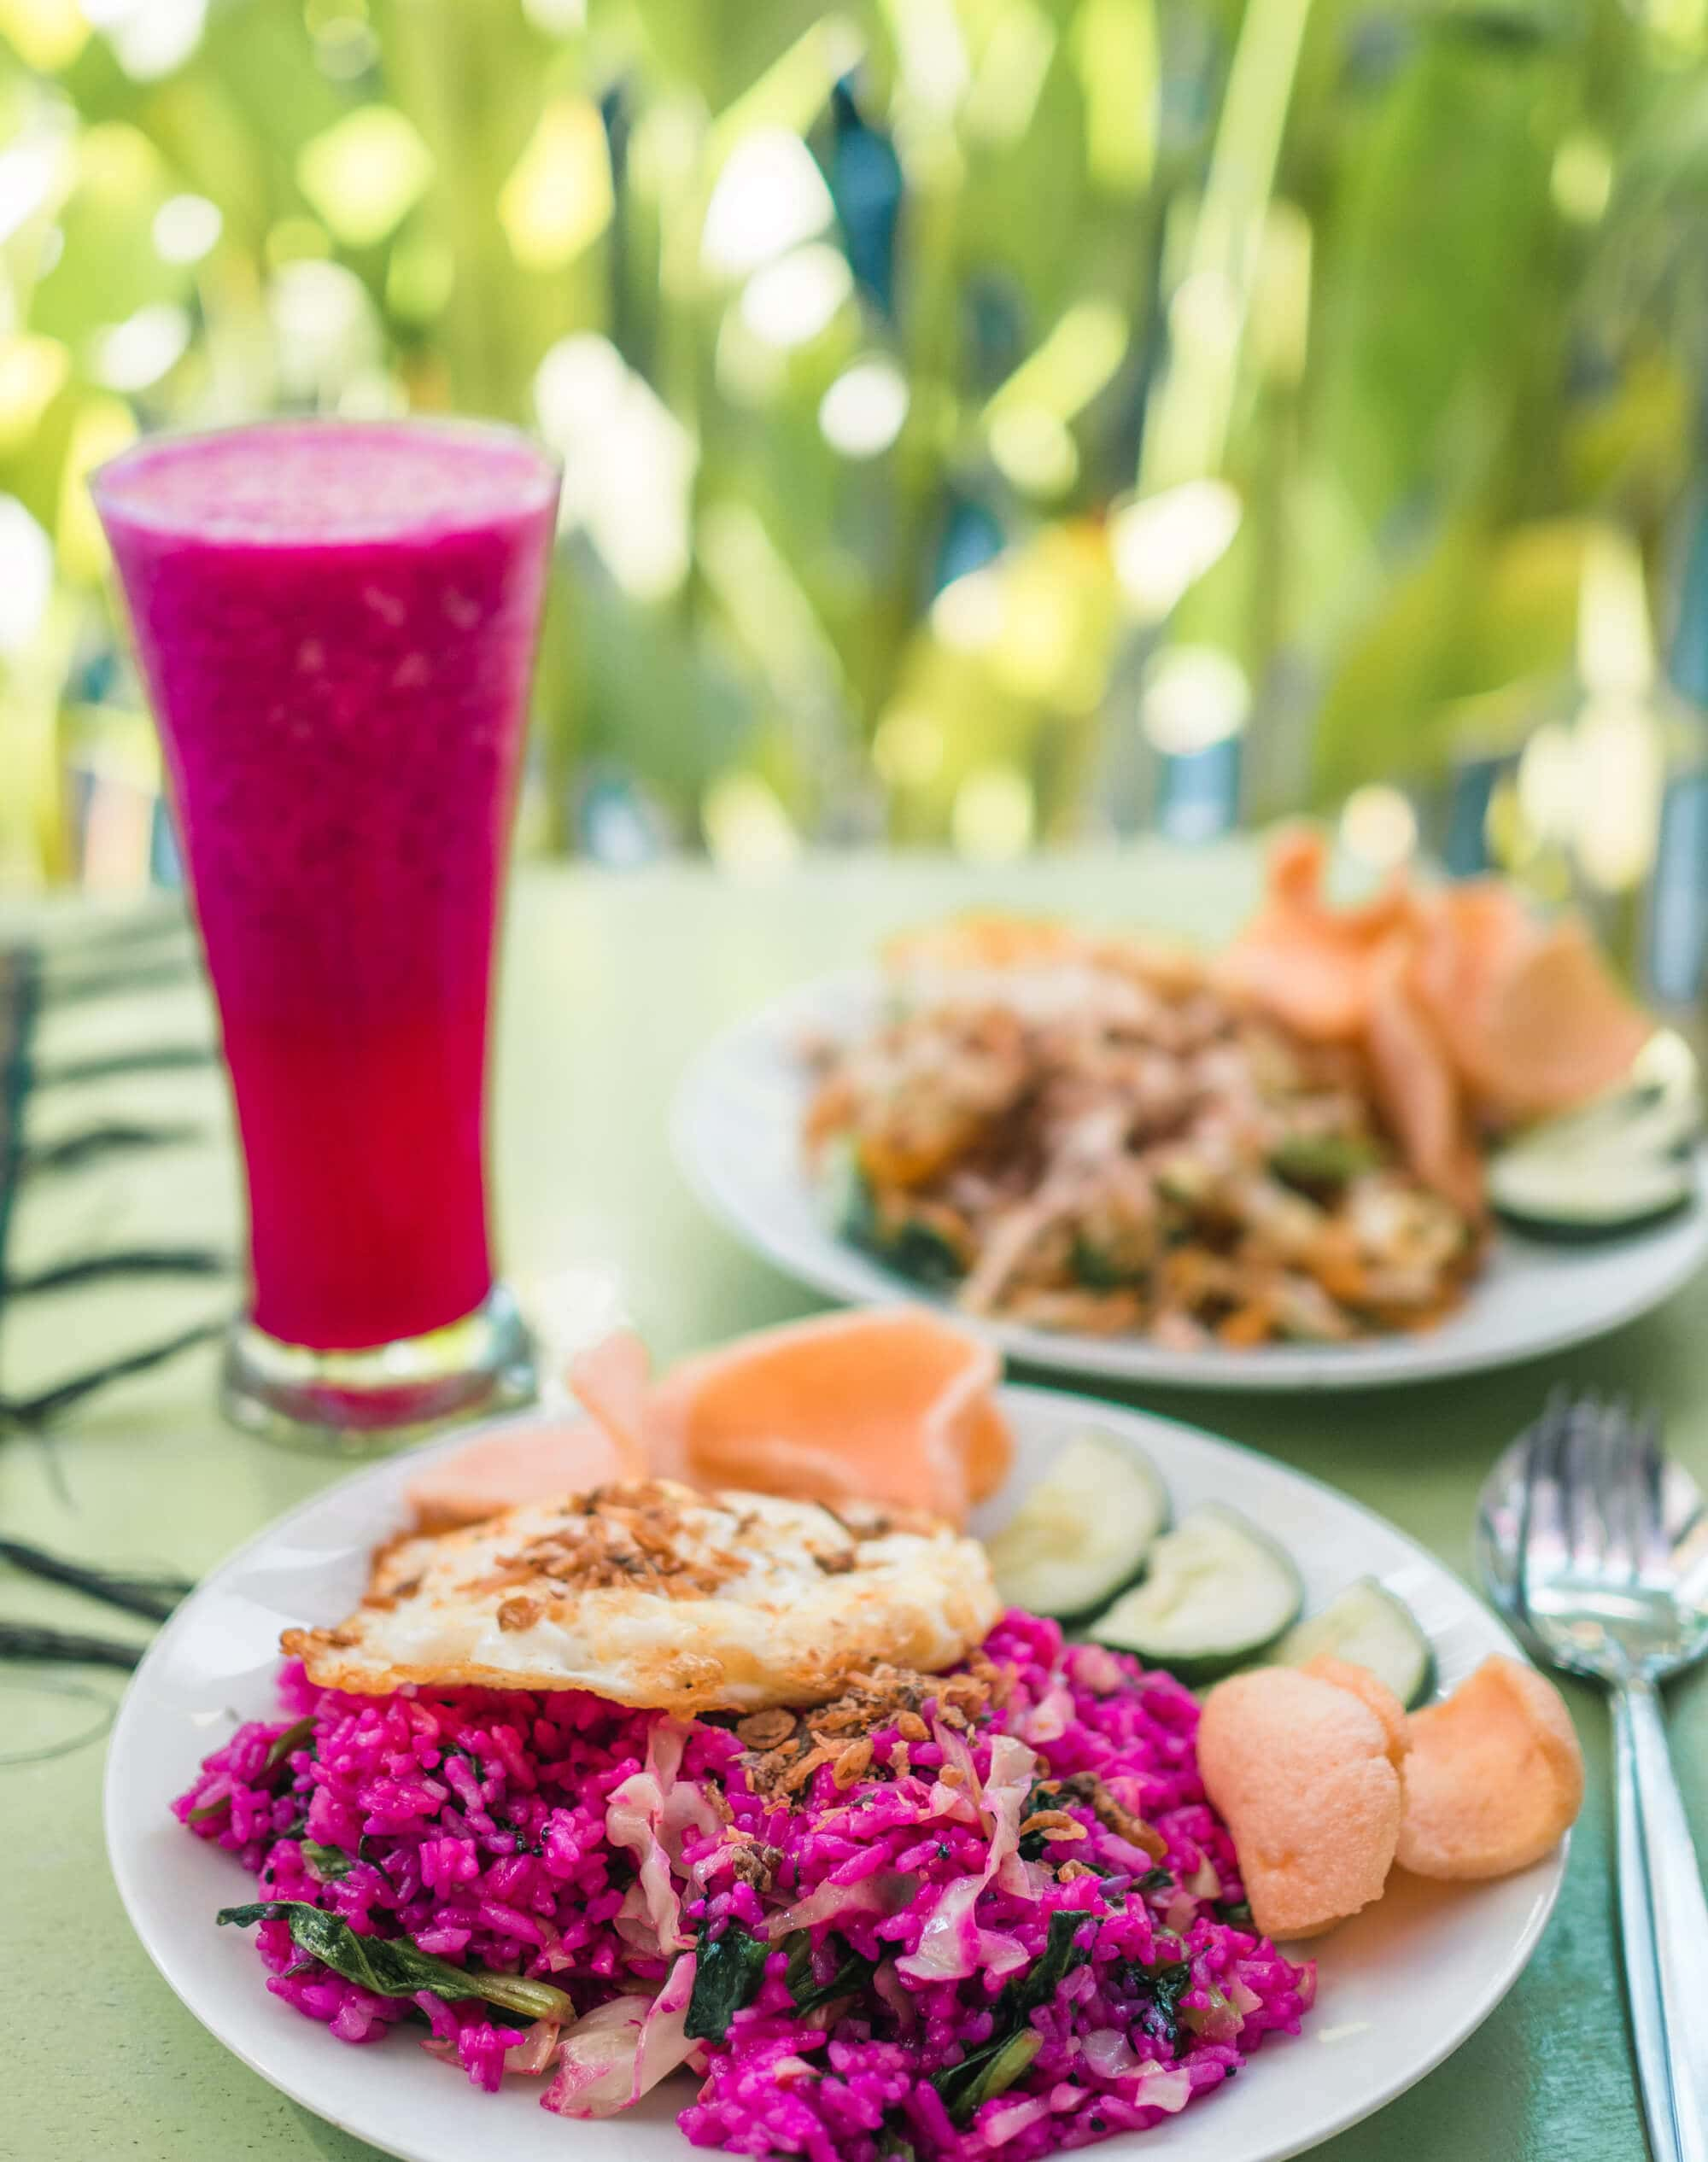 Island Life - Moving back to Bali & Lombok - Pink Nasi Goreng at Warung Anka in Legian